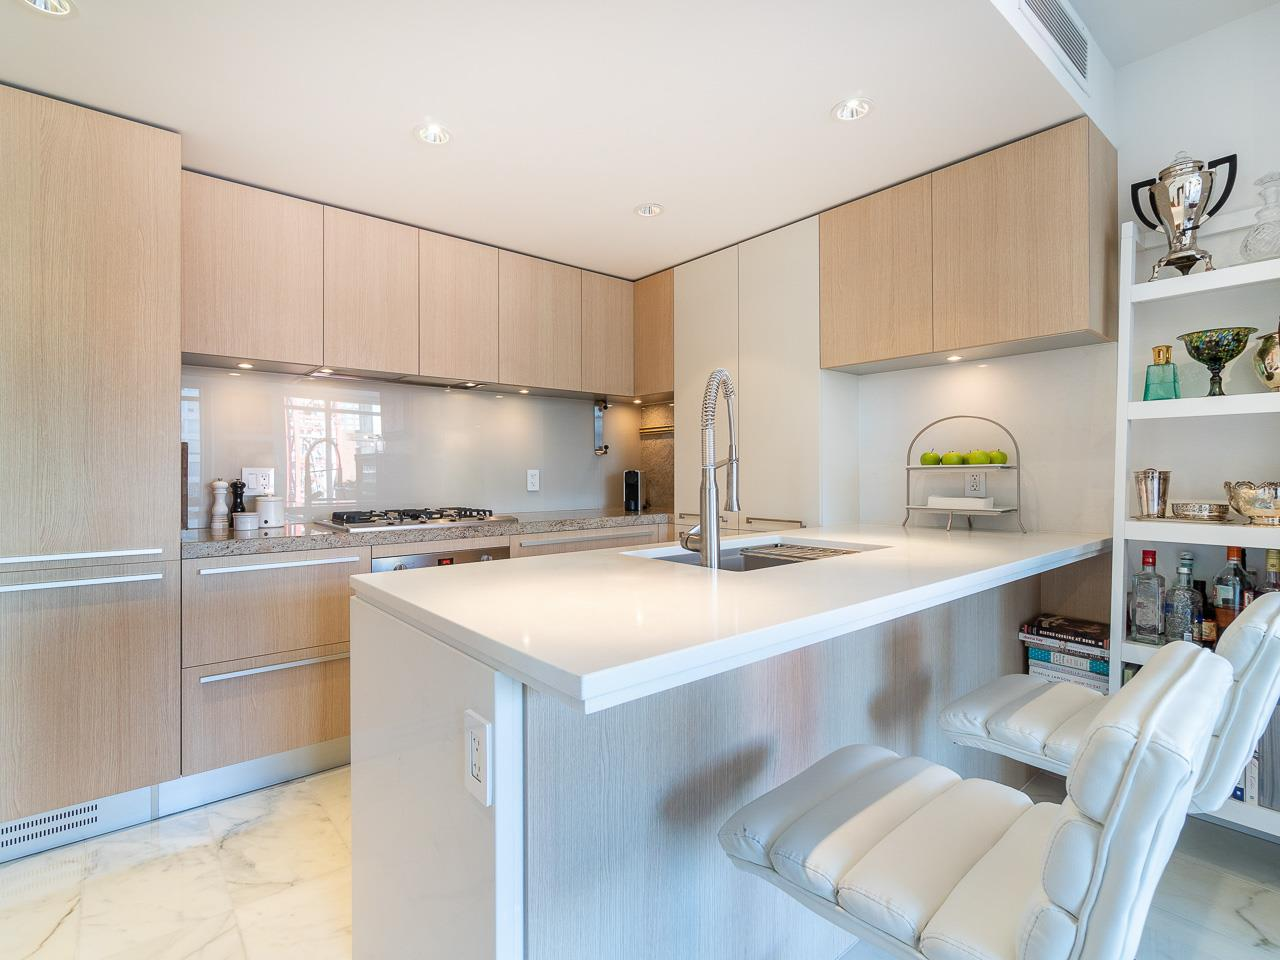 808 1351 CONTINENTAL STREET - Downtown VW Apartment/Condo for sale, 2 Bedrooms (R2487388) - #1